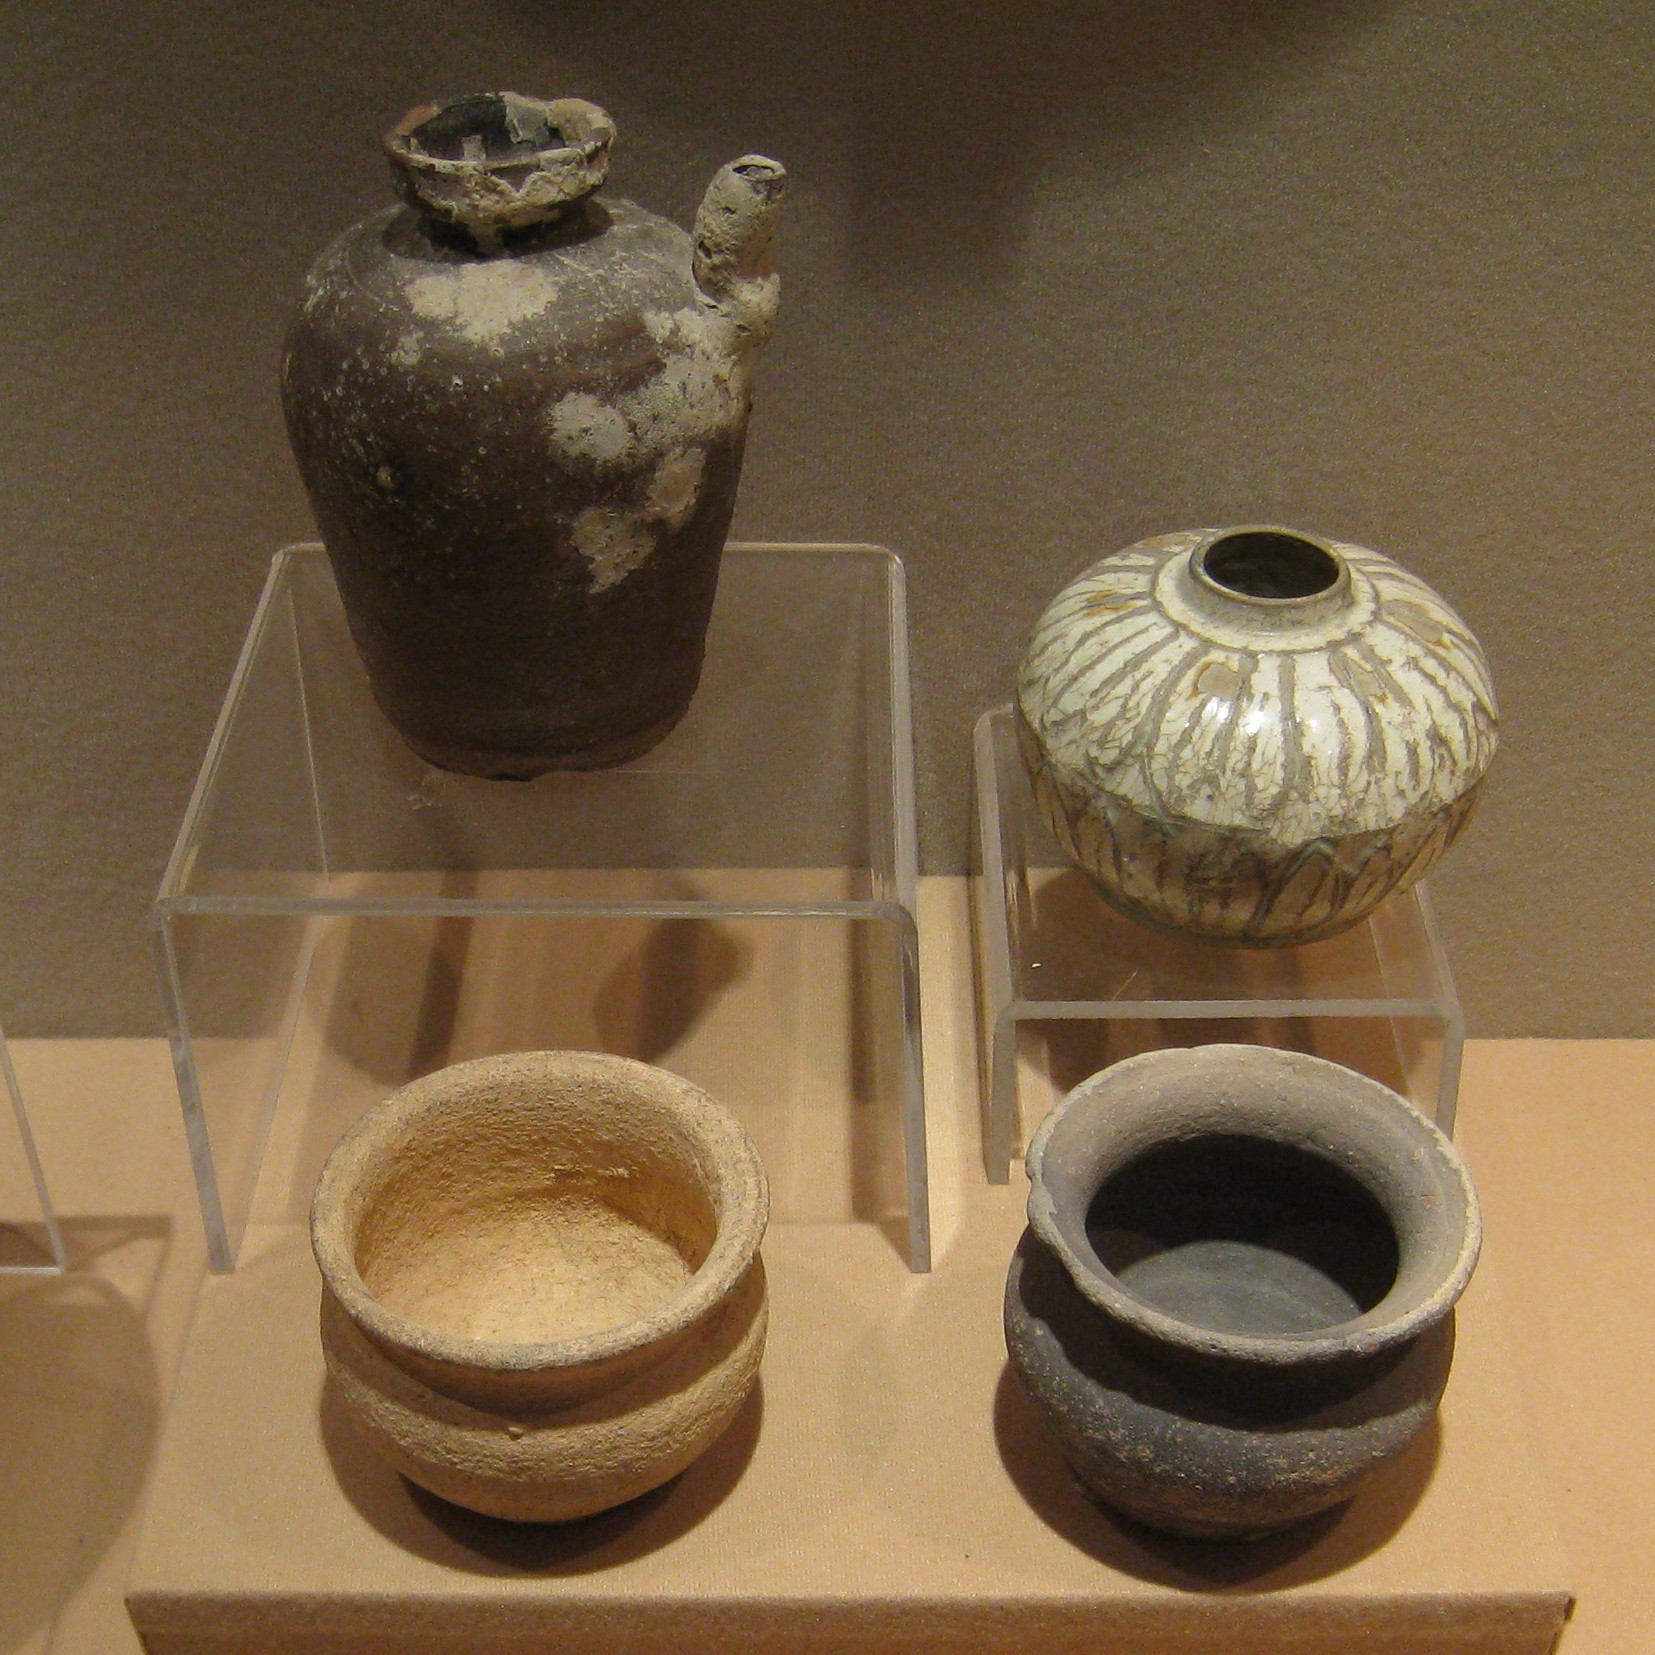 Chinese style pots found in Kedah, especially the top right one. Image from www.photodharma.net